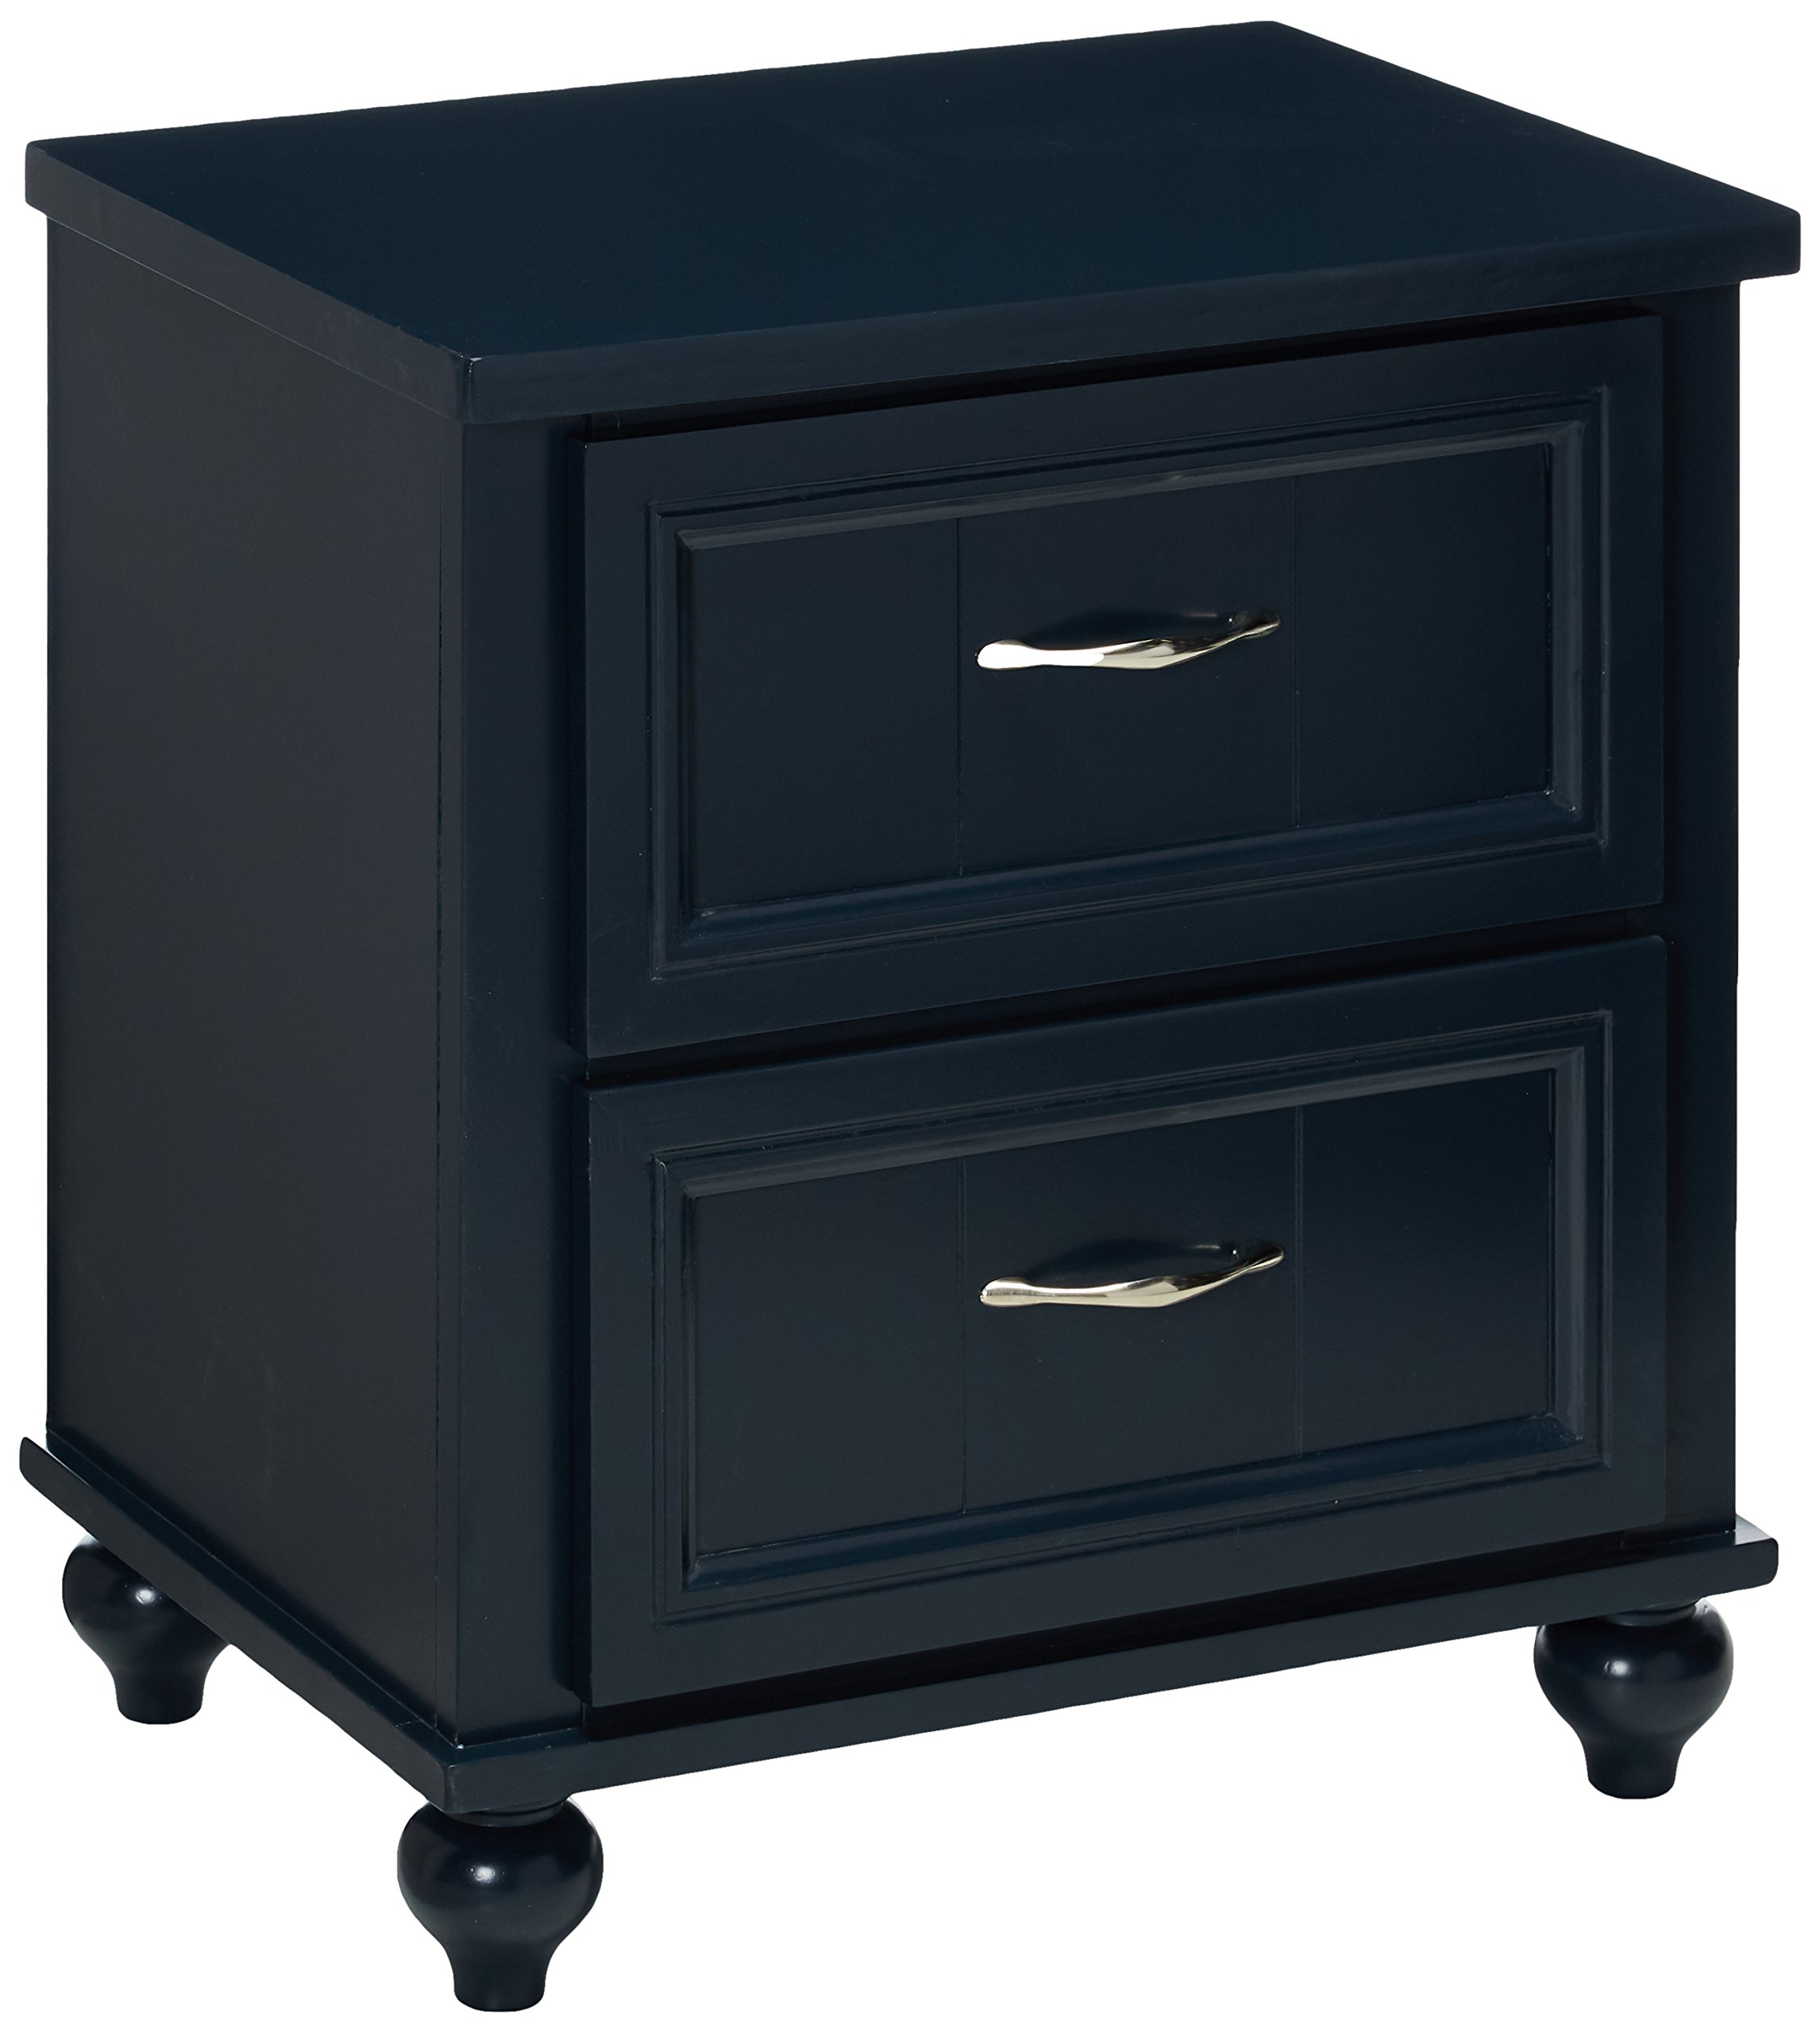 24/7 Shop at Home 247SHOPATHOME IDF-7322BL-N Childrens-nightstands, Blue by 24/7 Shop at Home